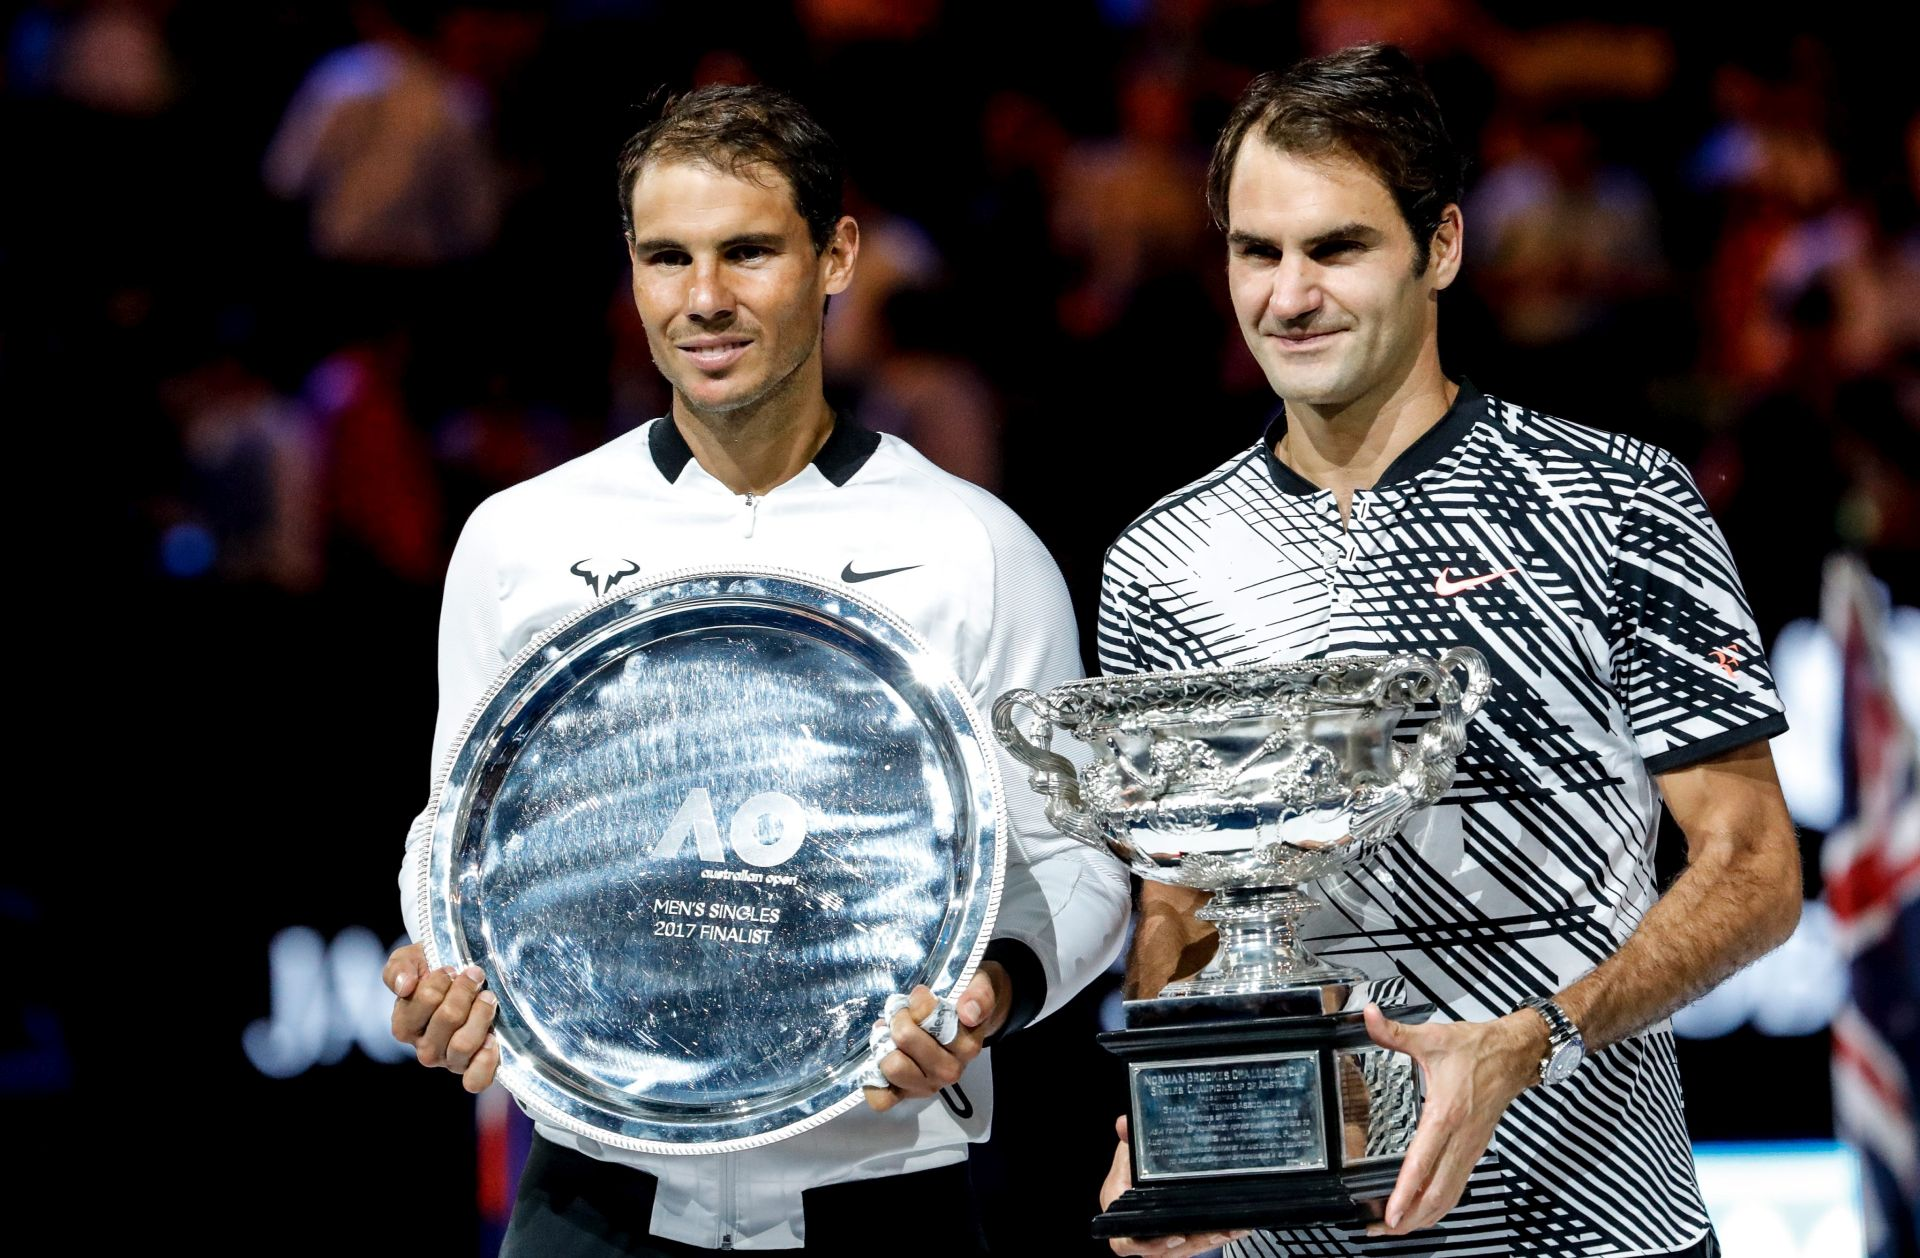 epa05759114 Roger Federer (R) of Switzerland celebrates with the trophy after winning the Men's Singles final match against Rafael Nadal (L) of Spain at the Australian Open Grand Slam tennis tournament in Melbourne, Victoria, Australia, 29 January 2017.  EPA/MADE NAGI